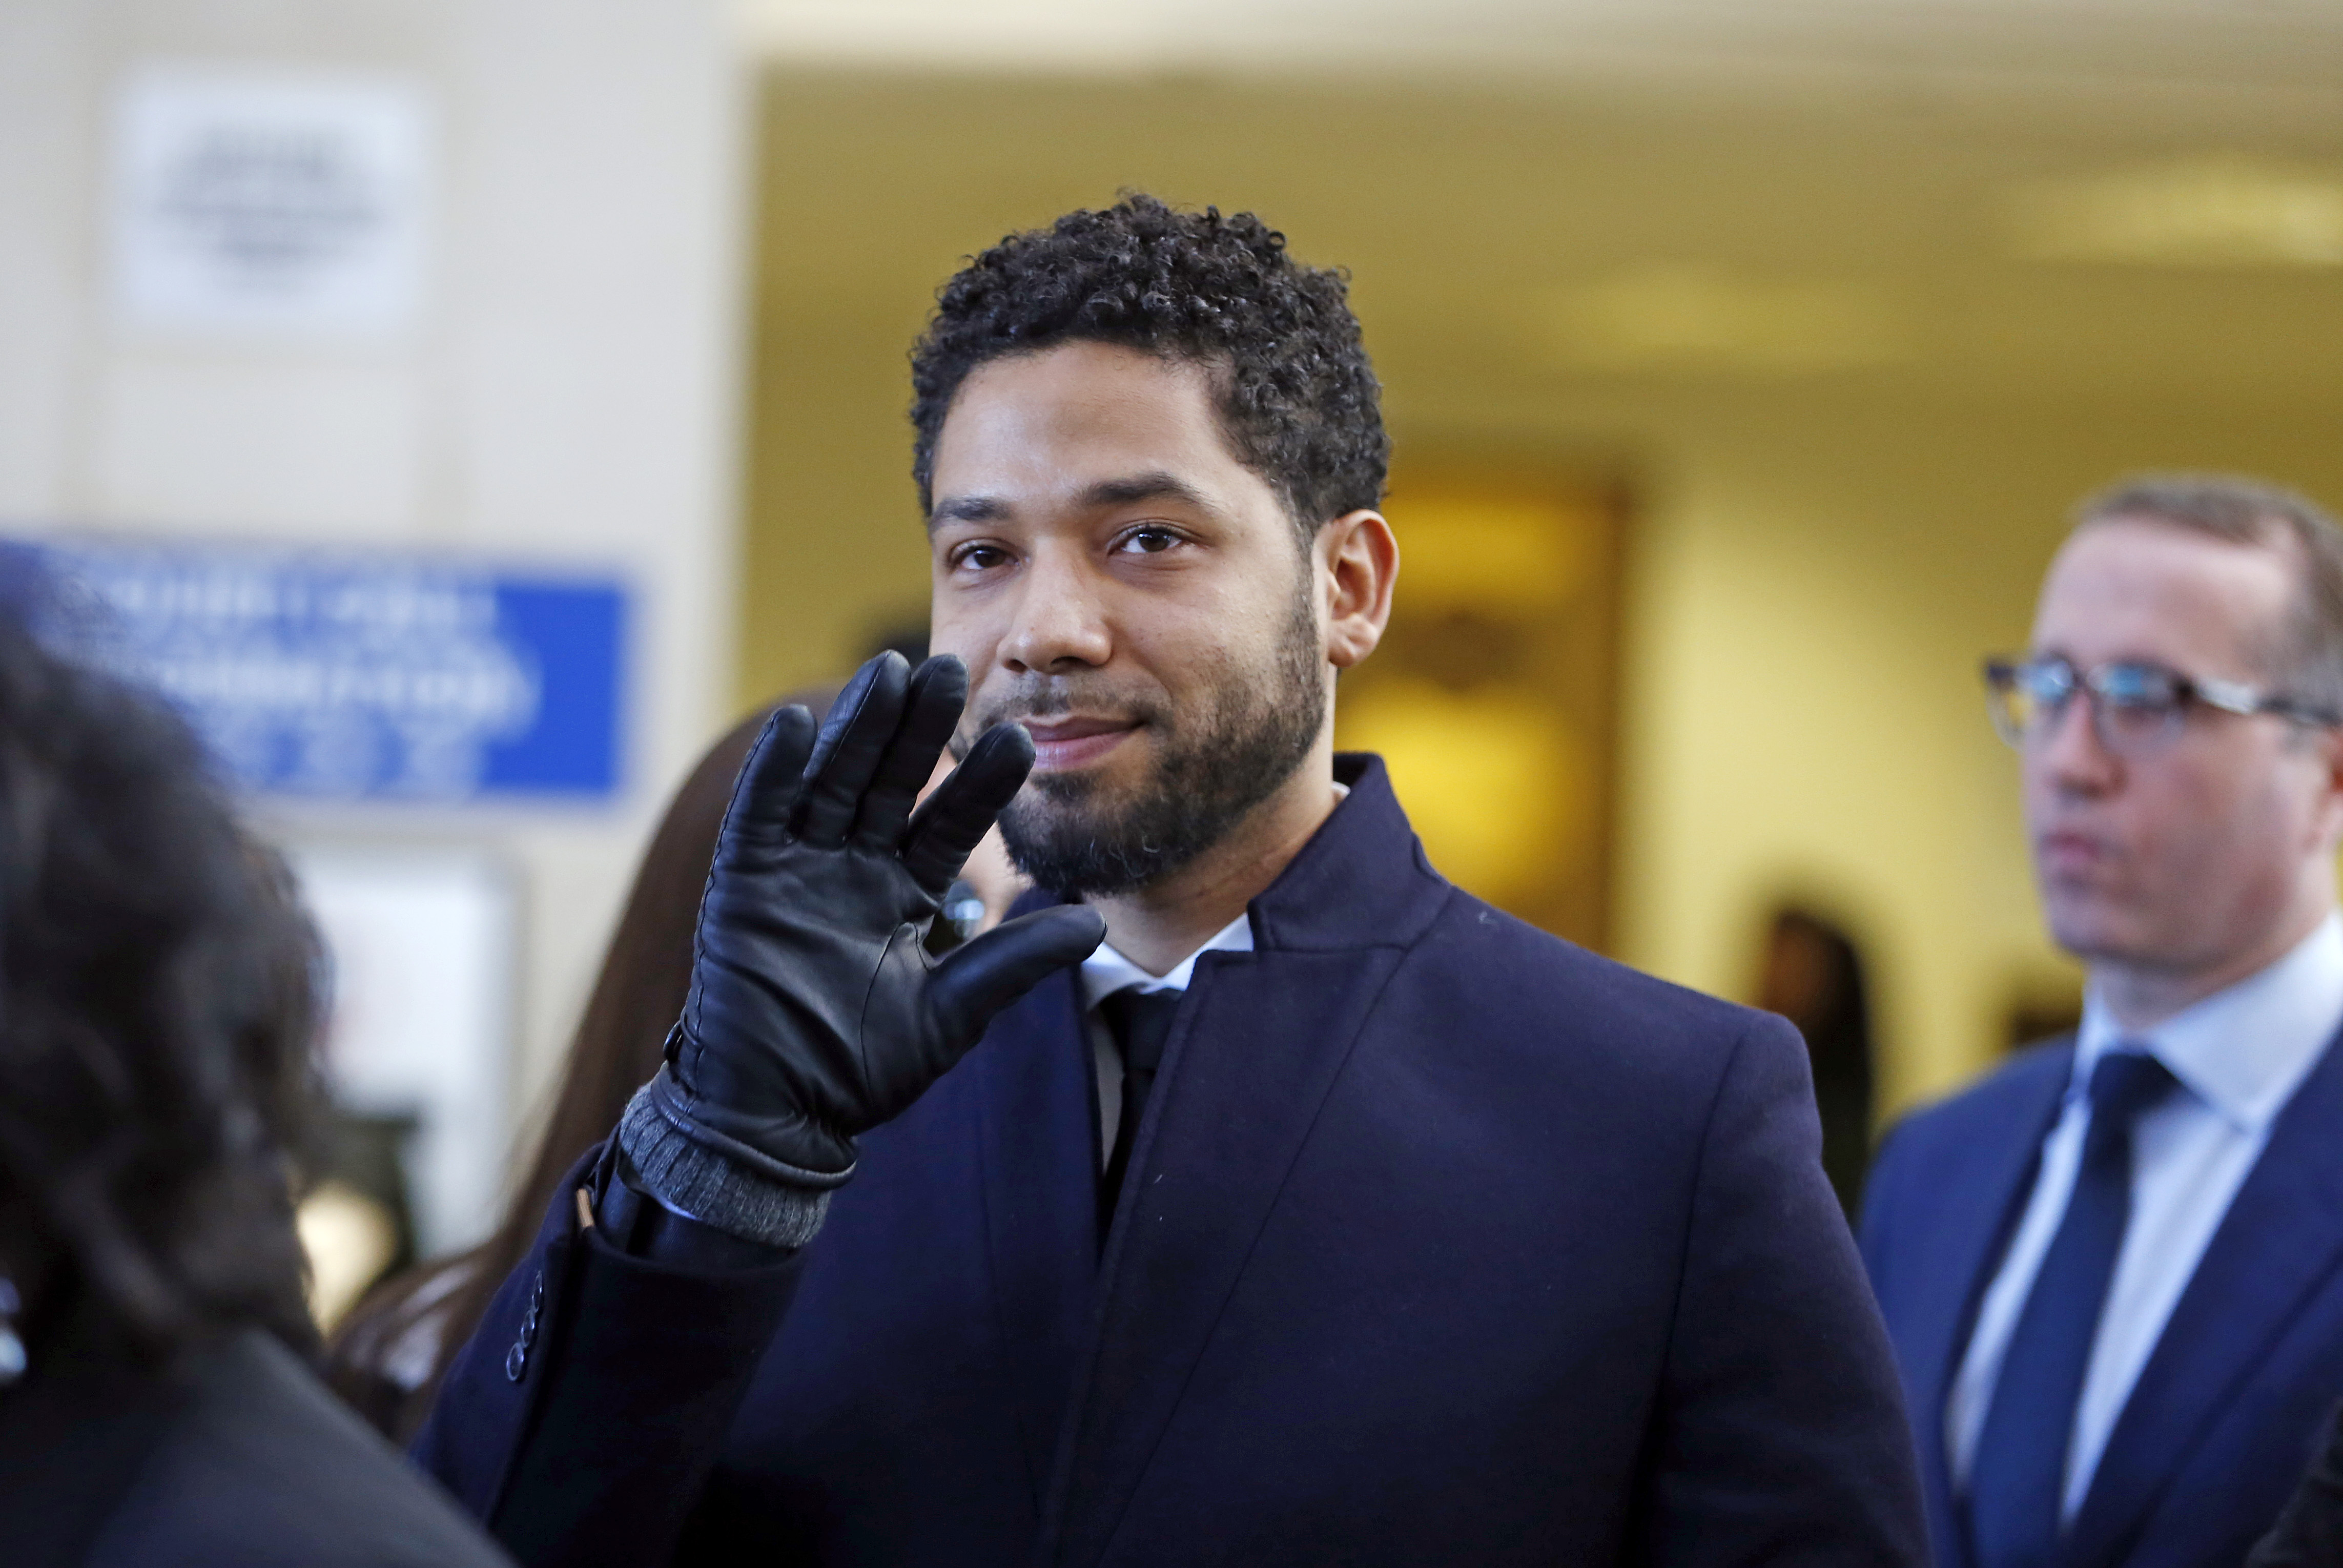 Jussie Smollett Indicted AGAIN For Lying About Alleged Hate Crime Attack